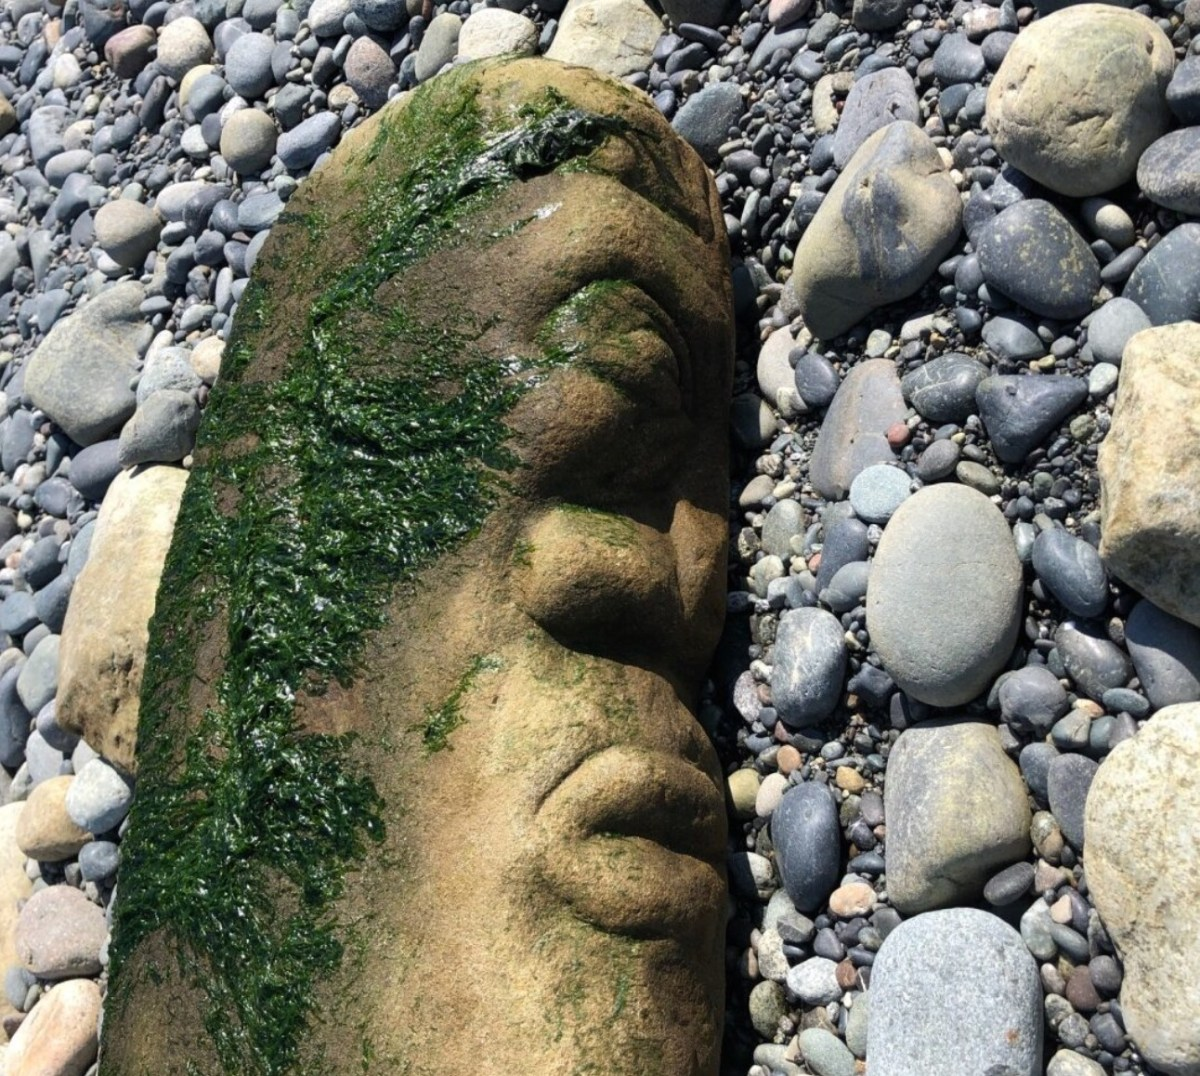 Stone figure identified by museum as indigenous artifact was actually carved recently by local artist | Boing Boing